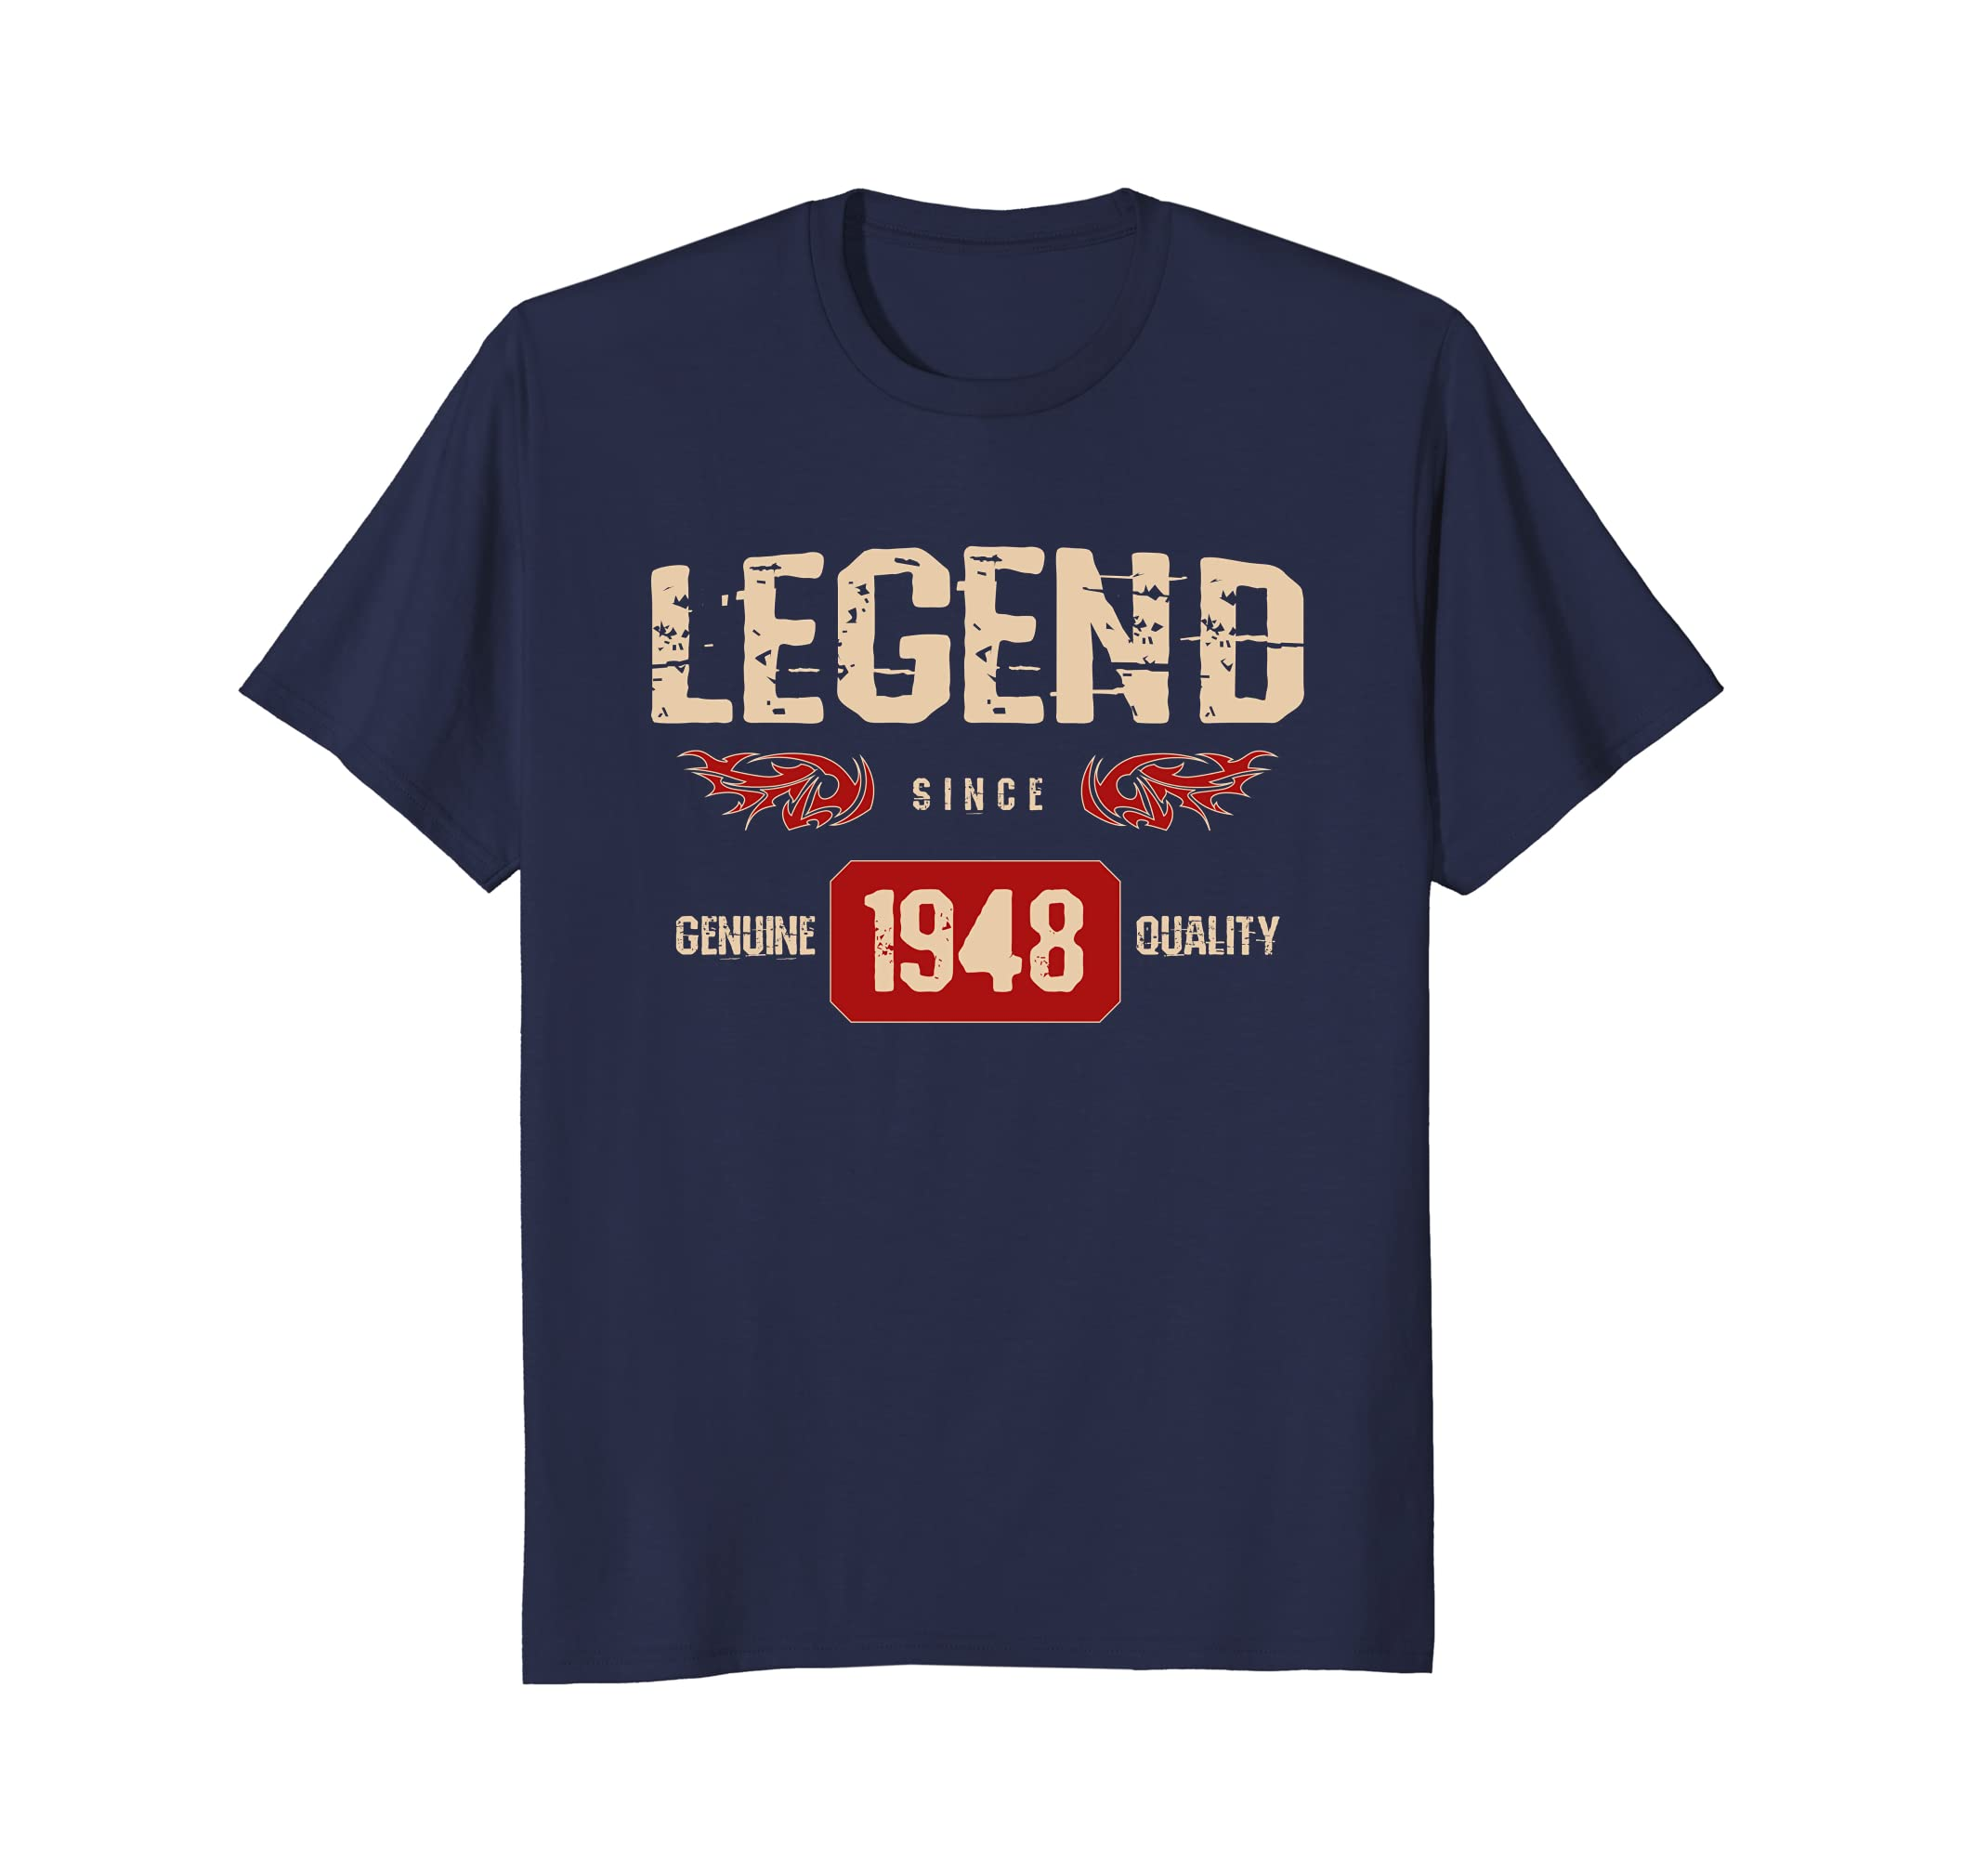 PeakTee 1948 Legend Shirt Men Women 70th Birthday Gift Idea Prm Paramatee